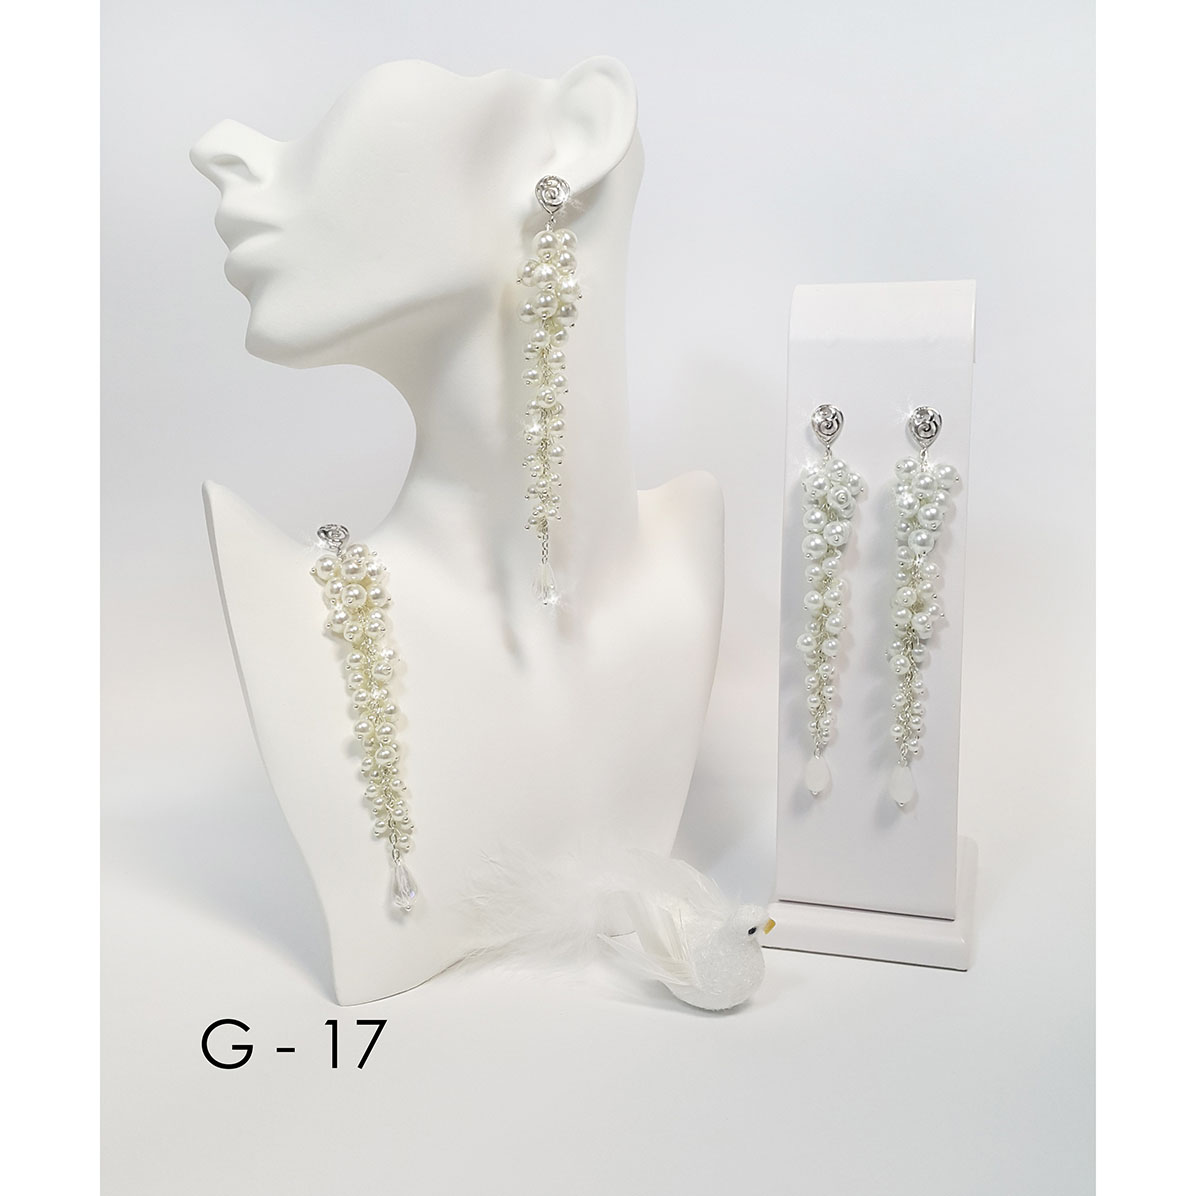 Accessory G 17 for the bride Foto 1